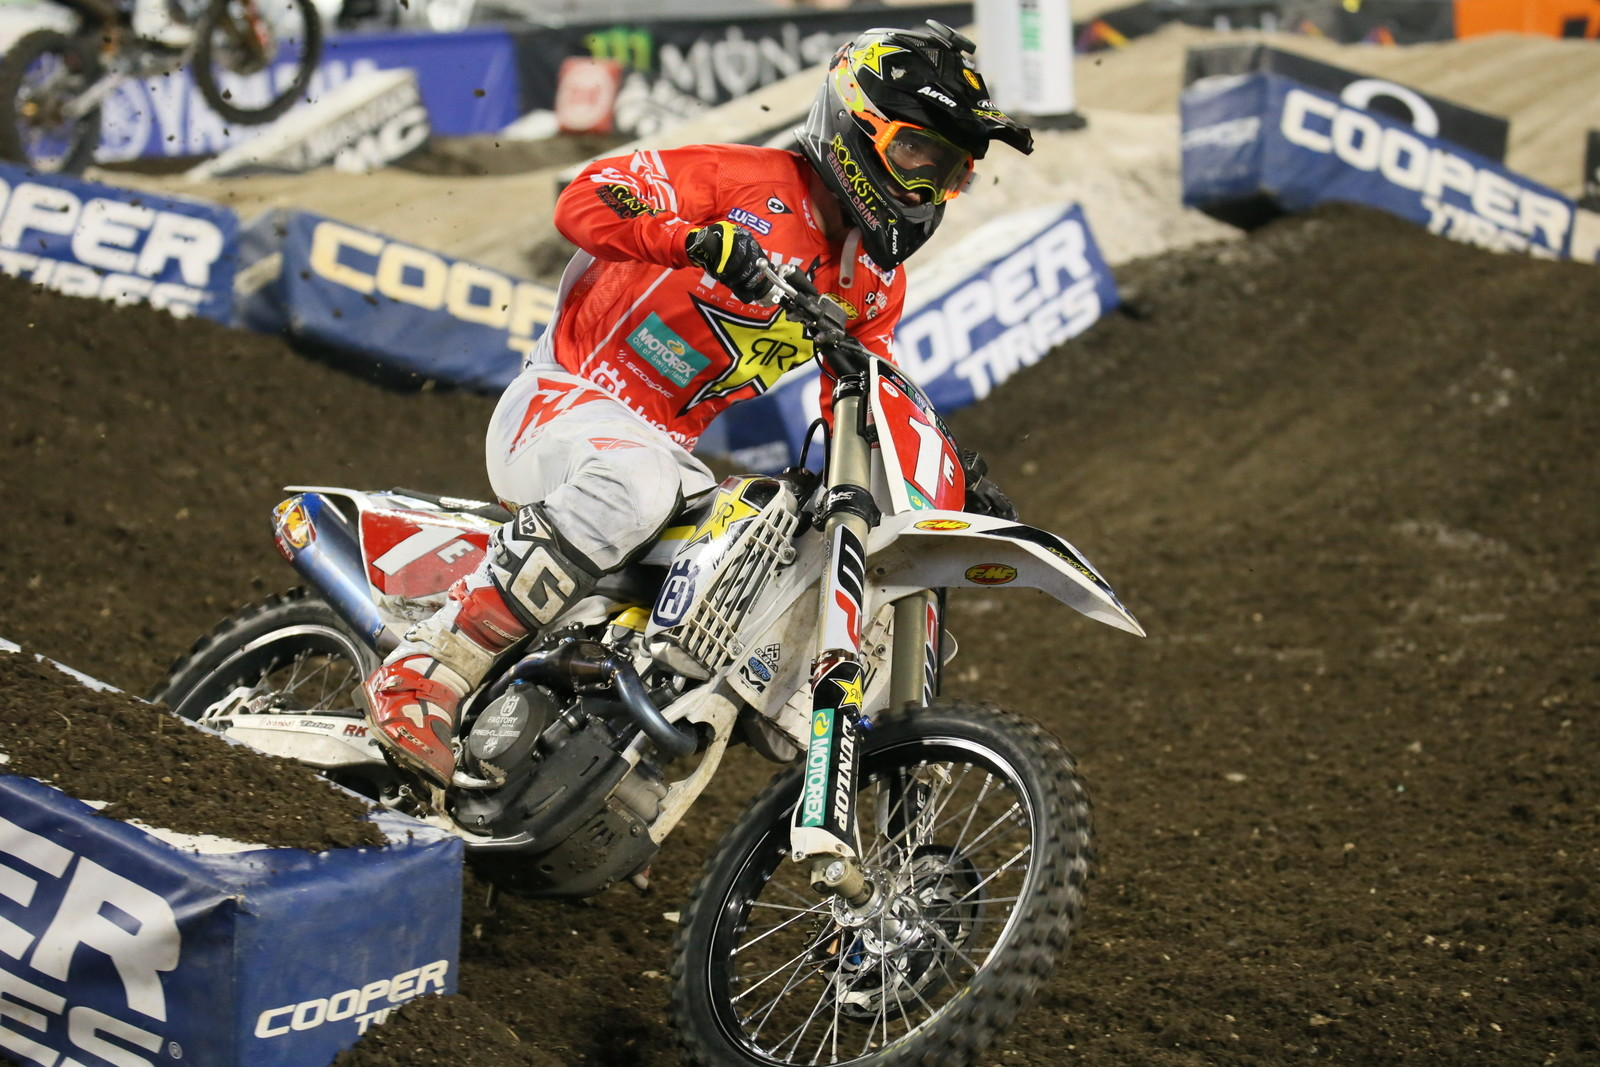 Zach Osborne was never far off from the lead, but he ended up third by the end of the Main Event.